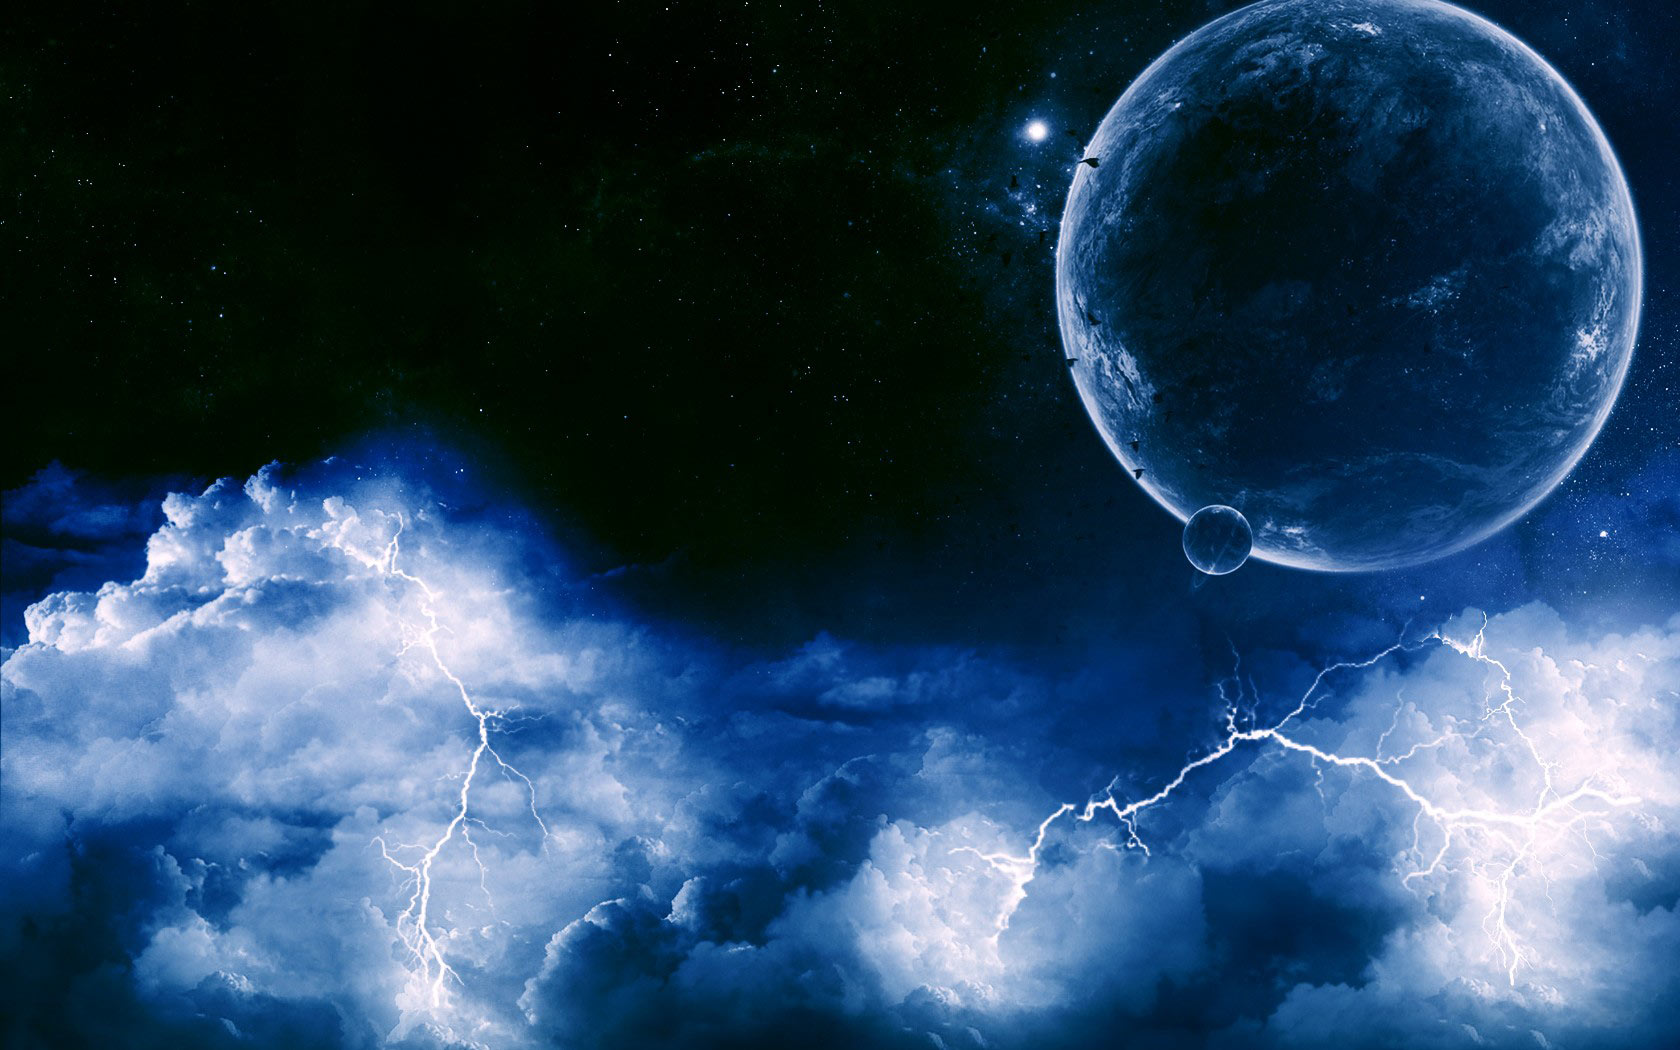 Space hd wallpapers full hd pictures - Wallpapers space hd ...